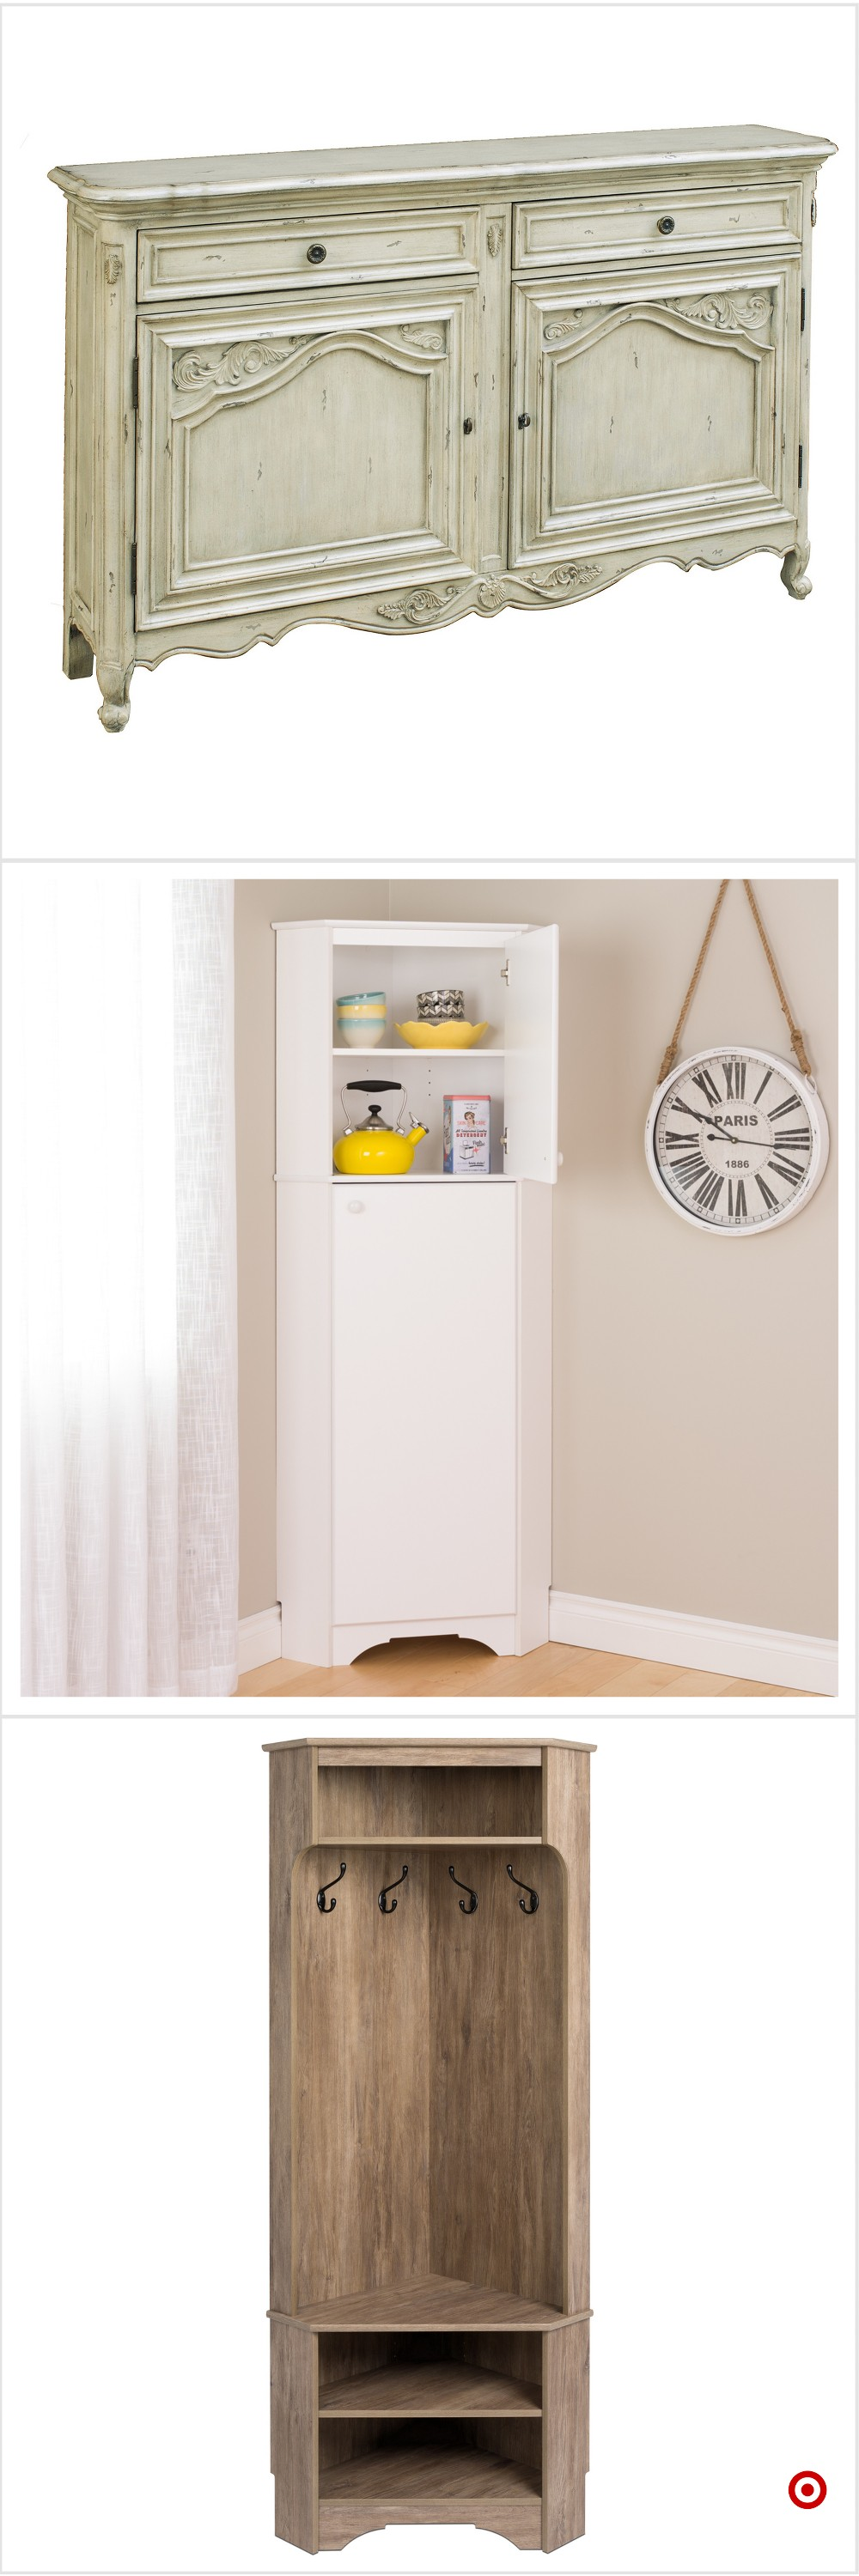 Shop Target For Decorative Storage Cabinets You Will Love At Great Low Prices Free Shipping On Orders Of Decorative Storage Cabinets Home Decor Redo Furniture